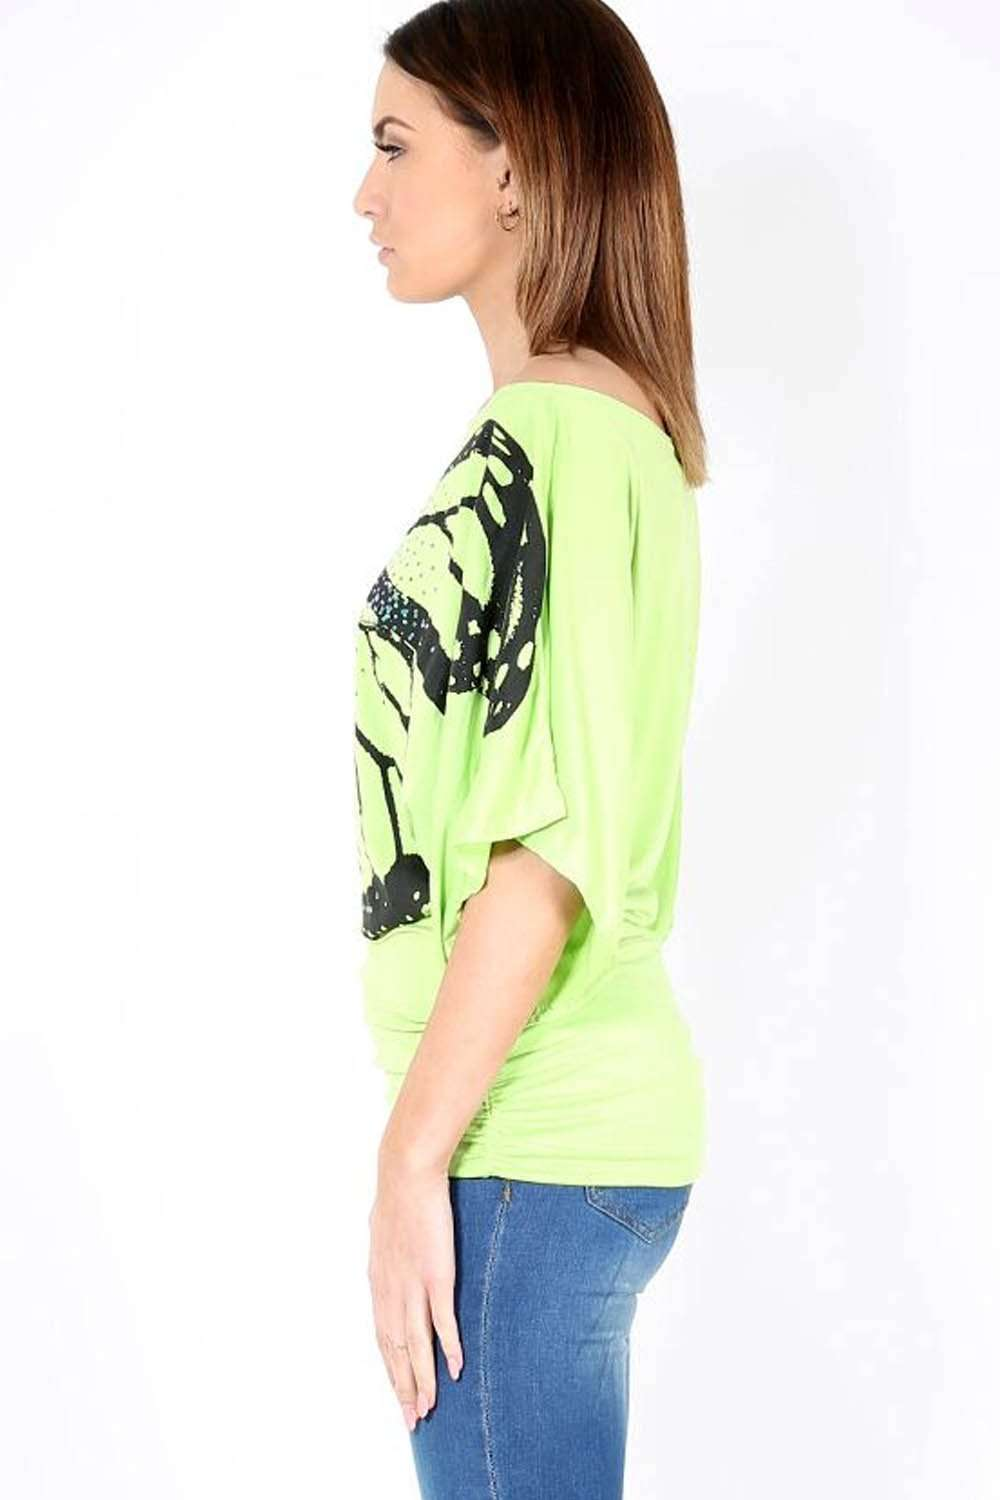 Polly Butterfly Print Bat Wing Baggy Tshirt - bejealous-com